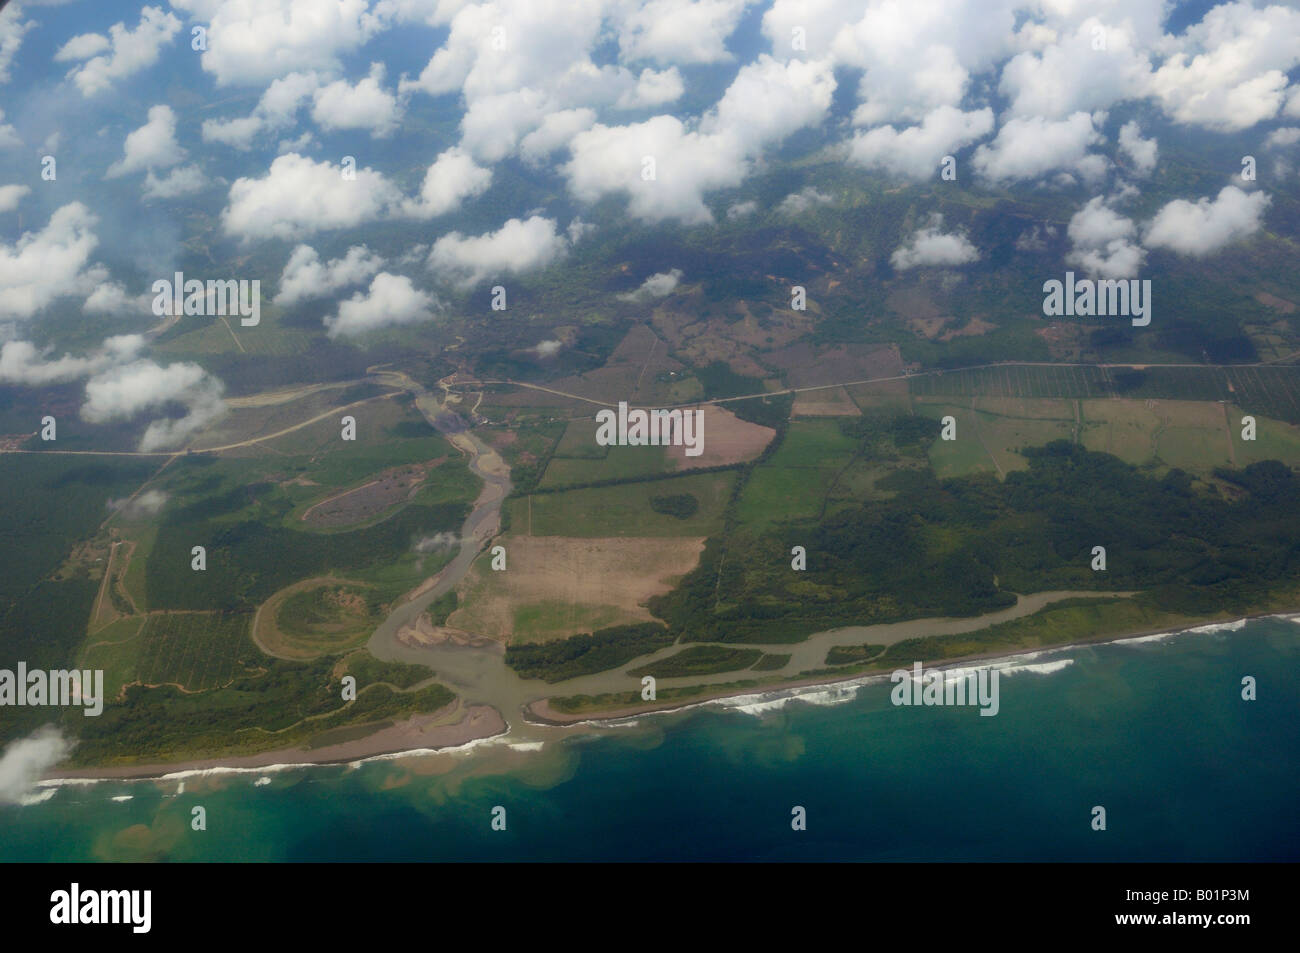 Aerial view of mouth of the Rio Savegre river emptying into the Pacific Ocean Costa Rica - Stock Image